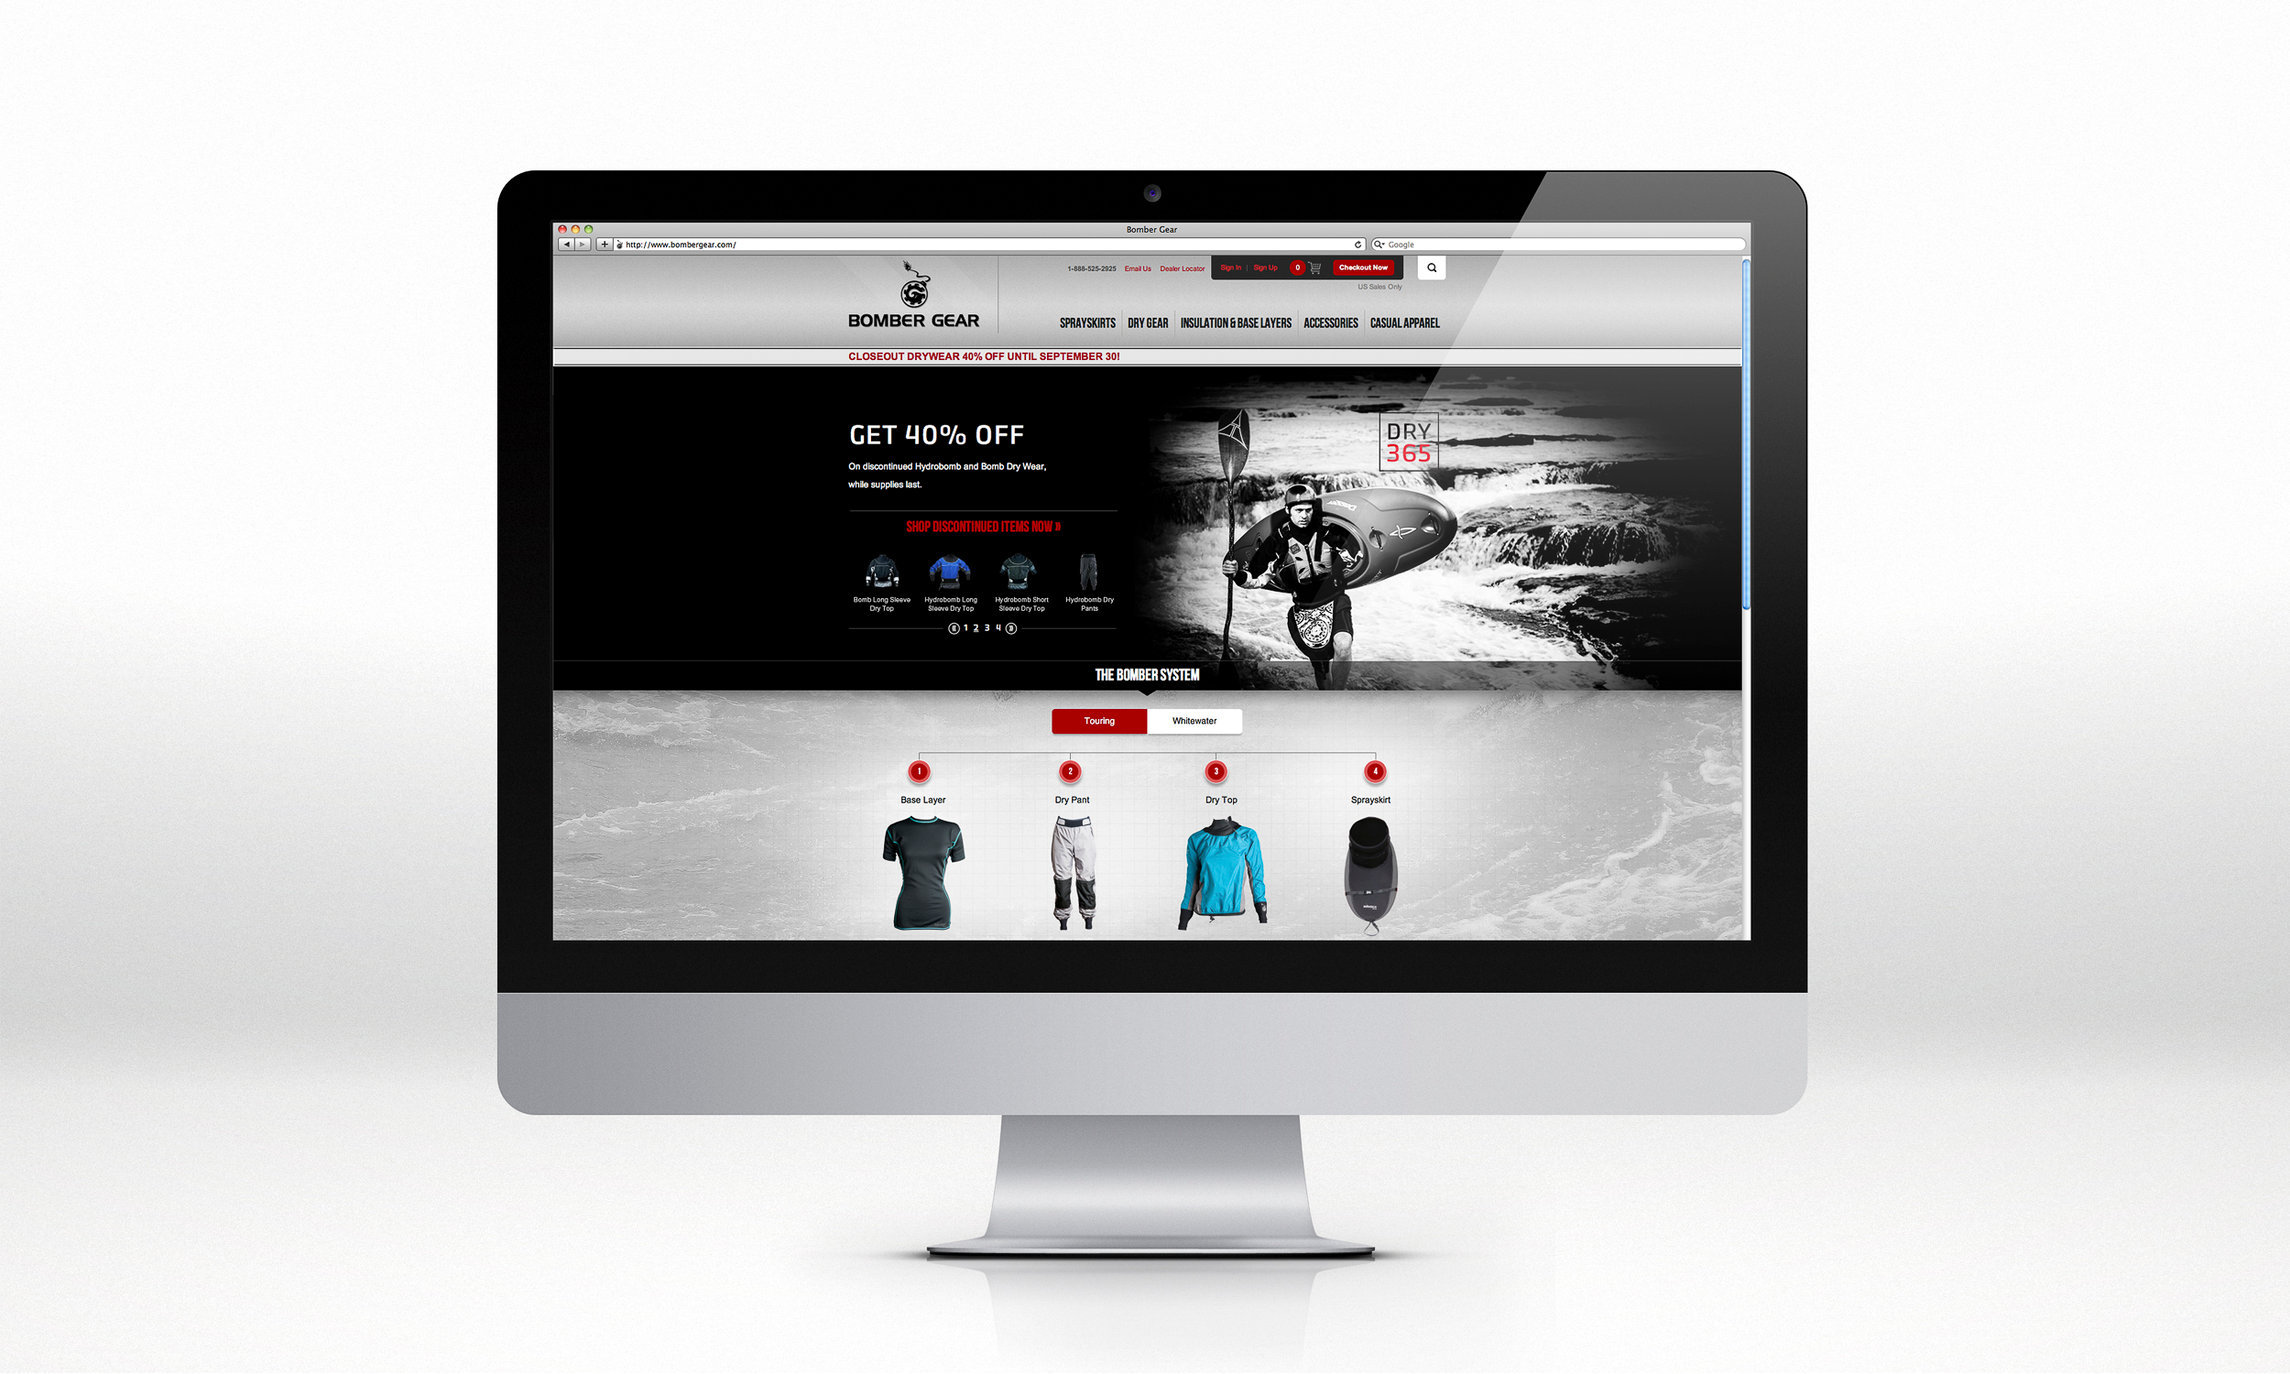 Bomber Gear's website splash pages and web marketing